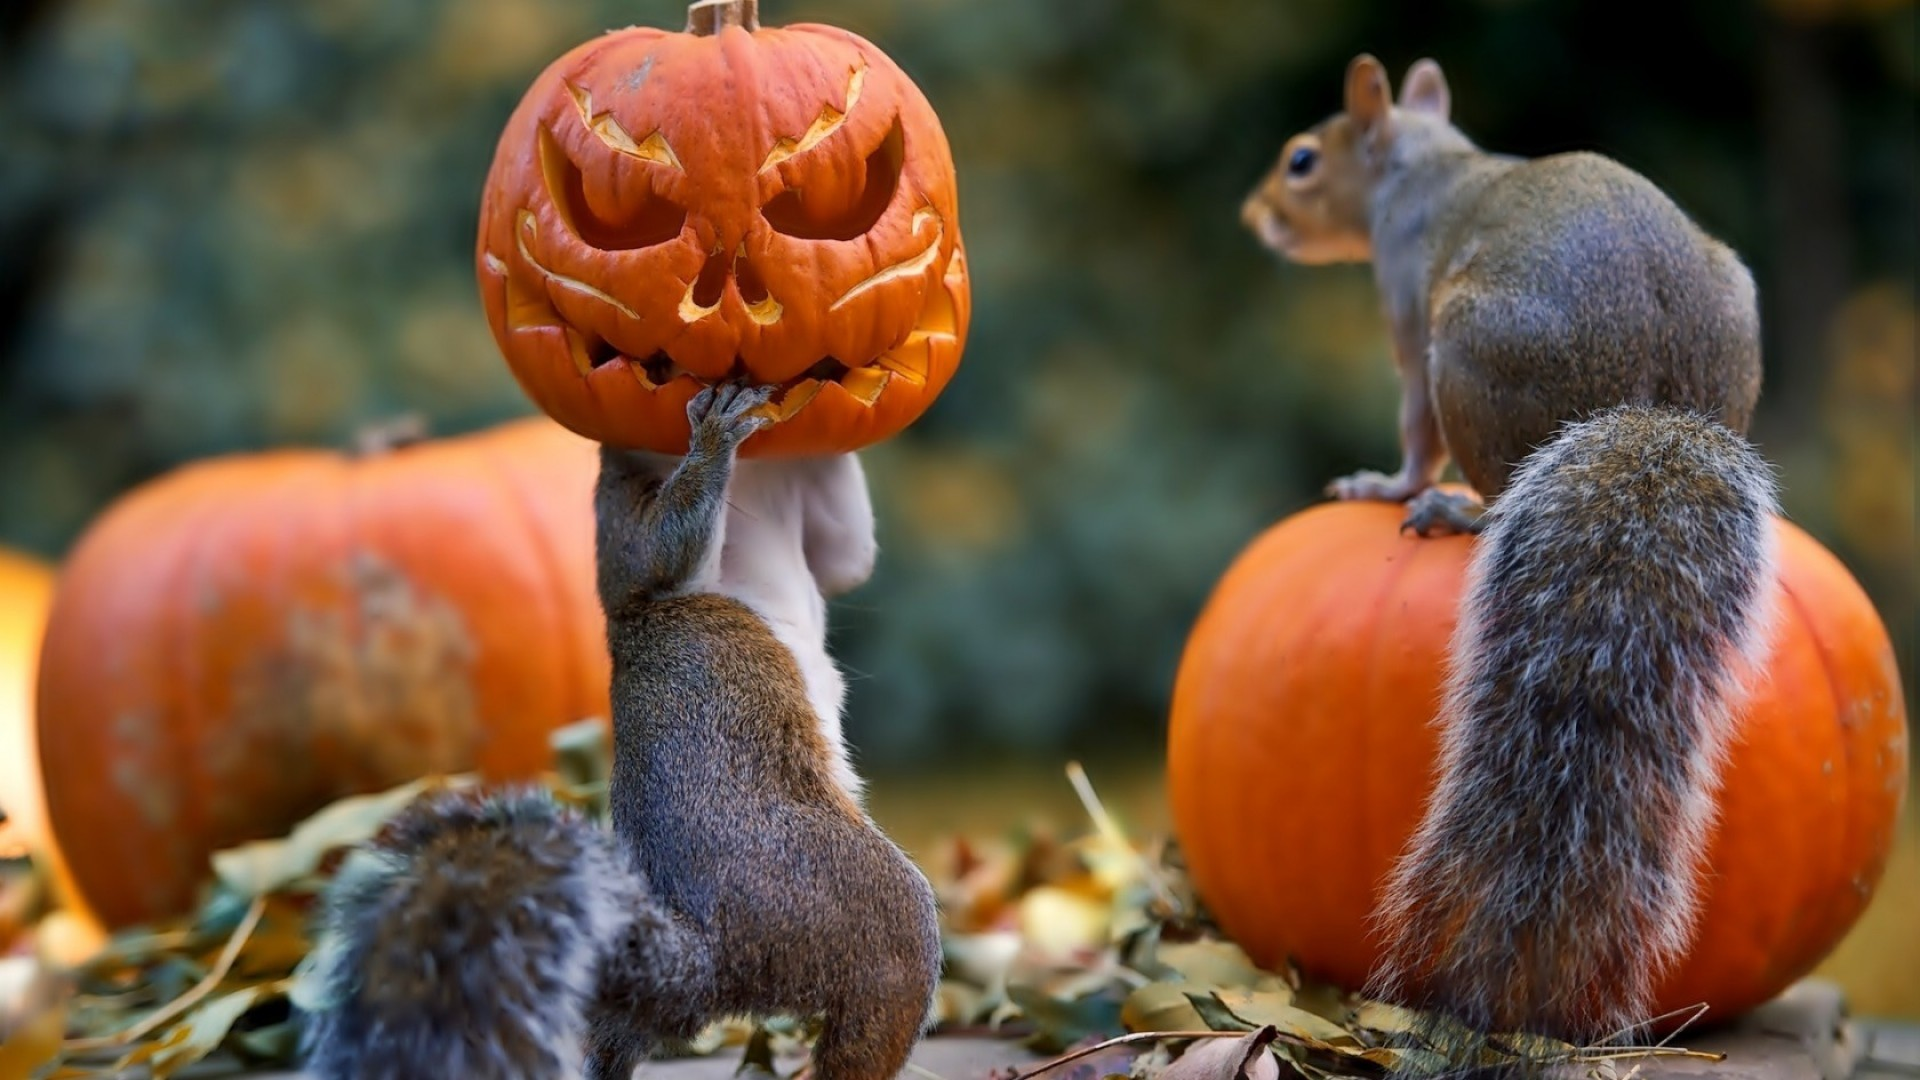 1920x1080 Full HD Wallpaper halloween forest squirrel Jack-o'-lantern